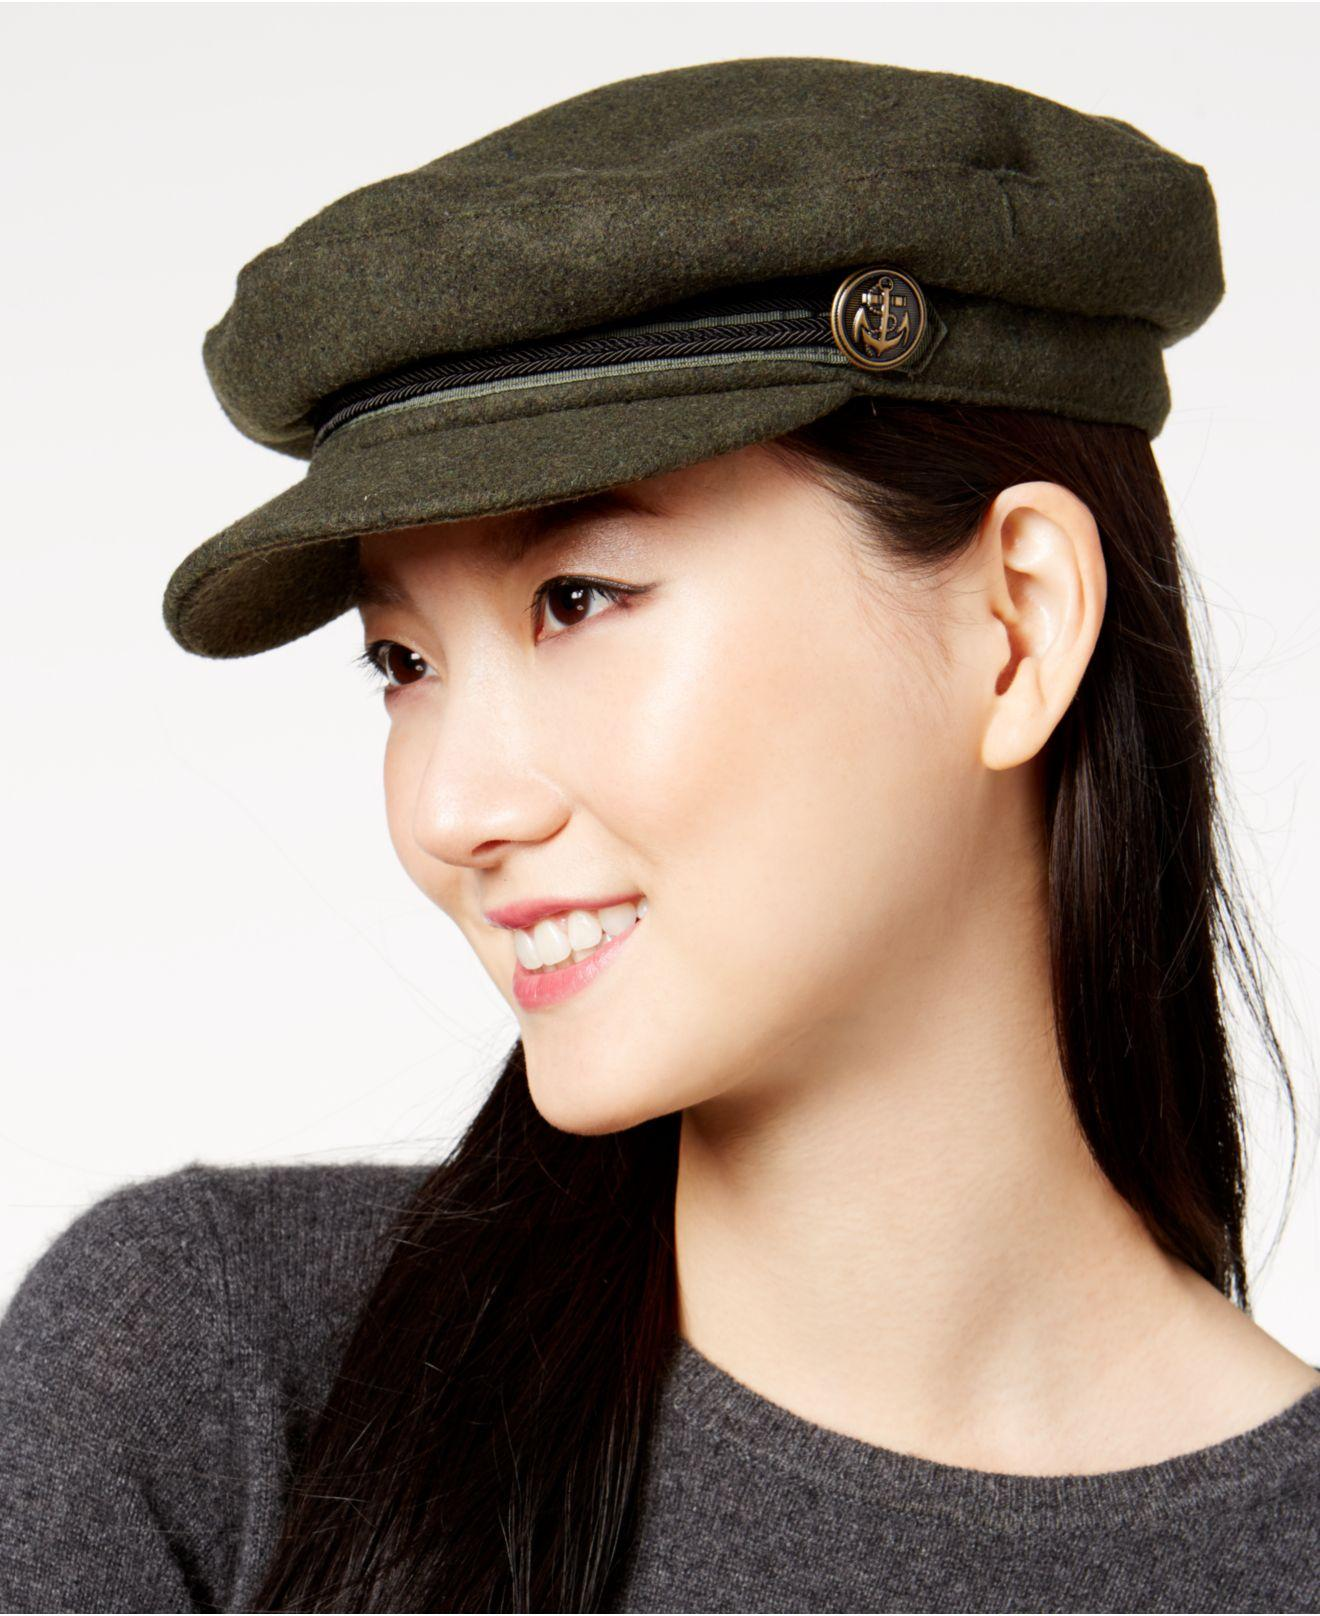 3457cf2a828 Lyst - Vince Camuto Sailor s Newsboy Cap in Black